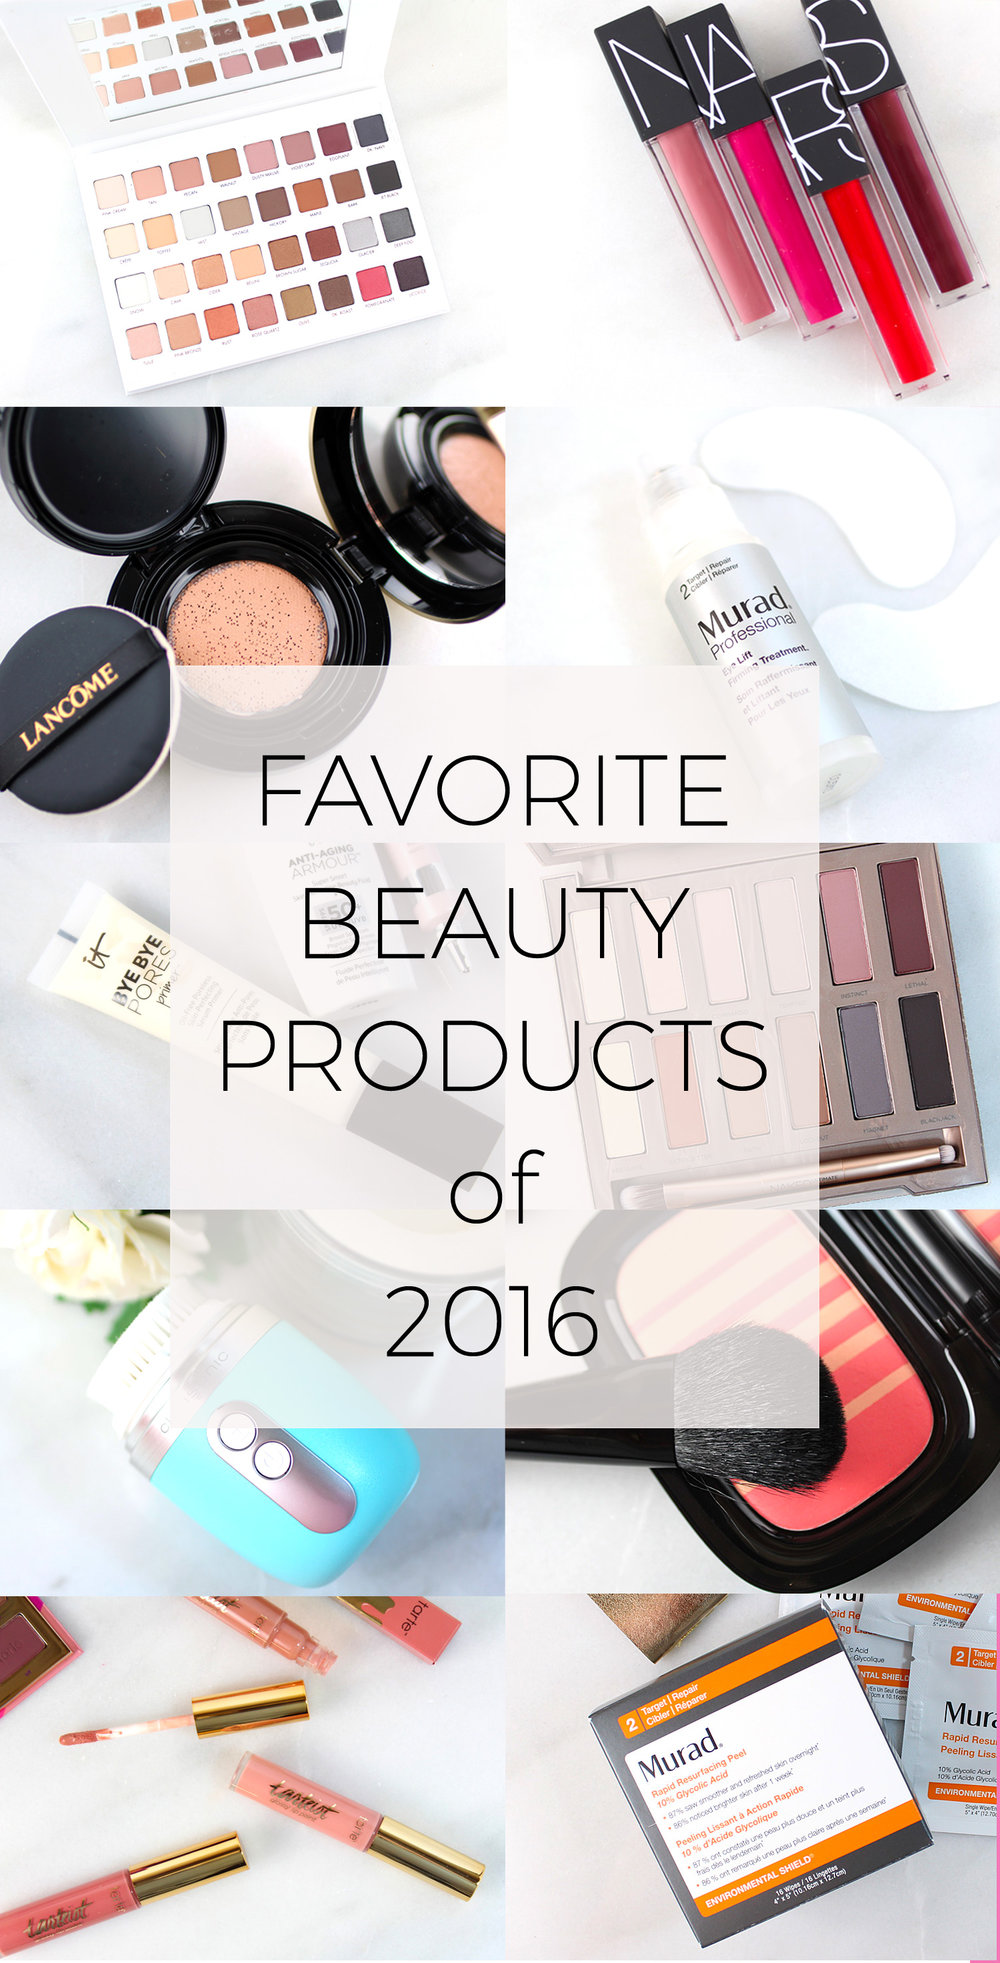 10 Favorite Beauty Products from 2016